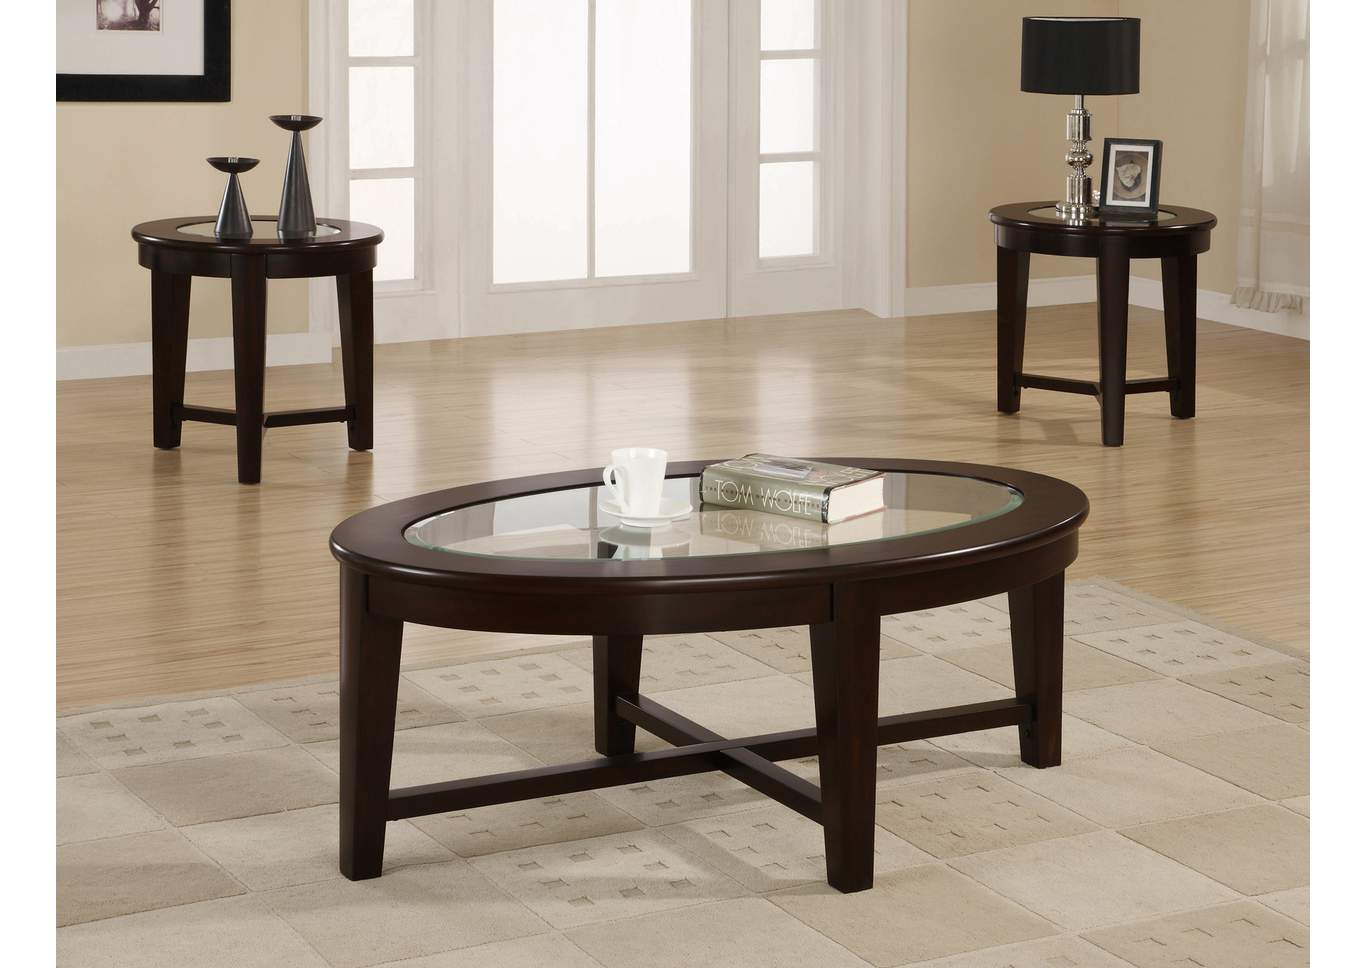 Cappuccino Three-Piece Occasional Table Set,Coaster Furniture